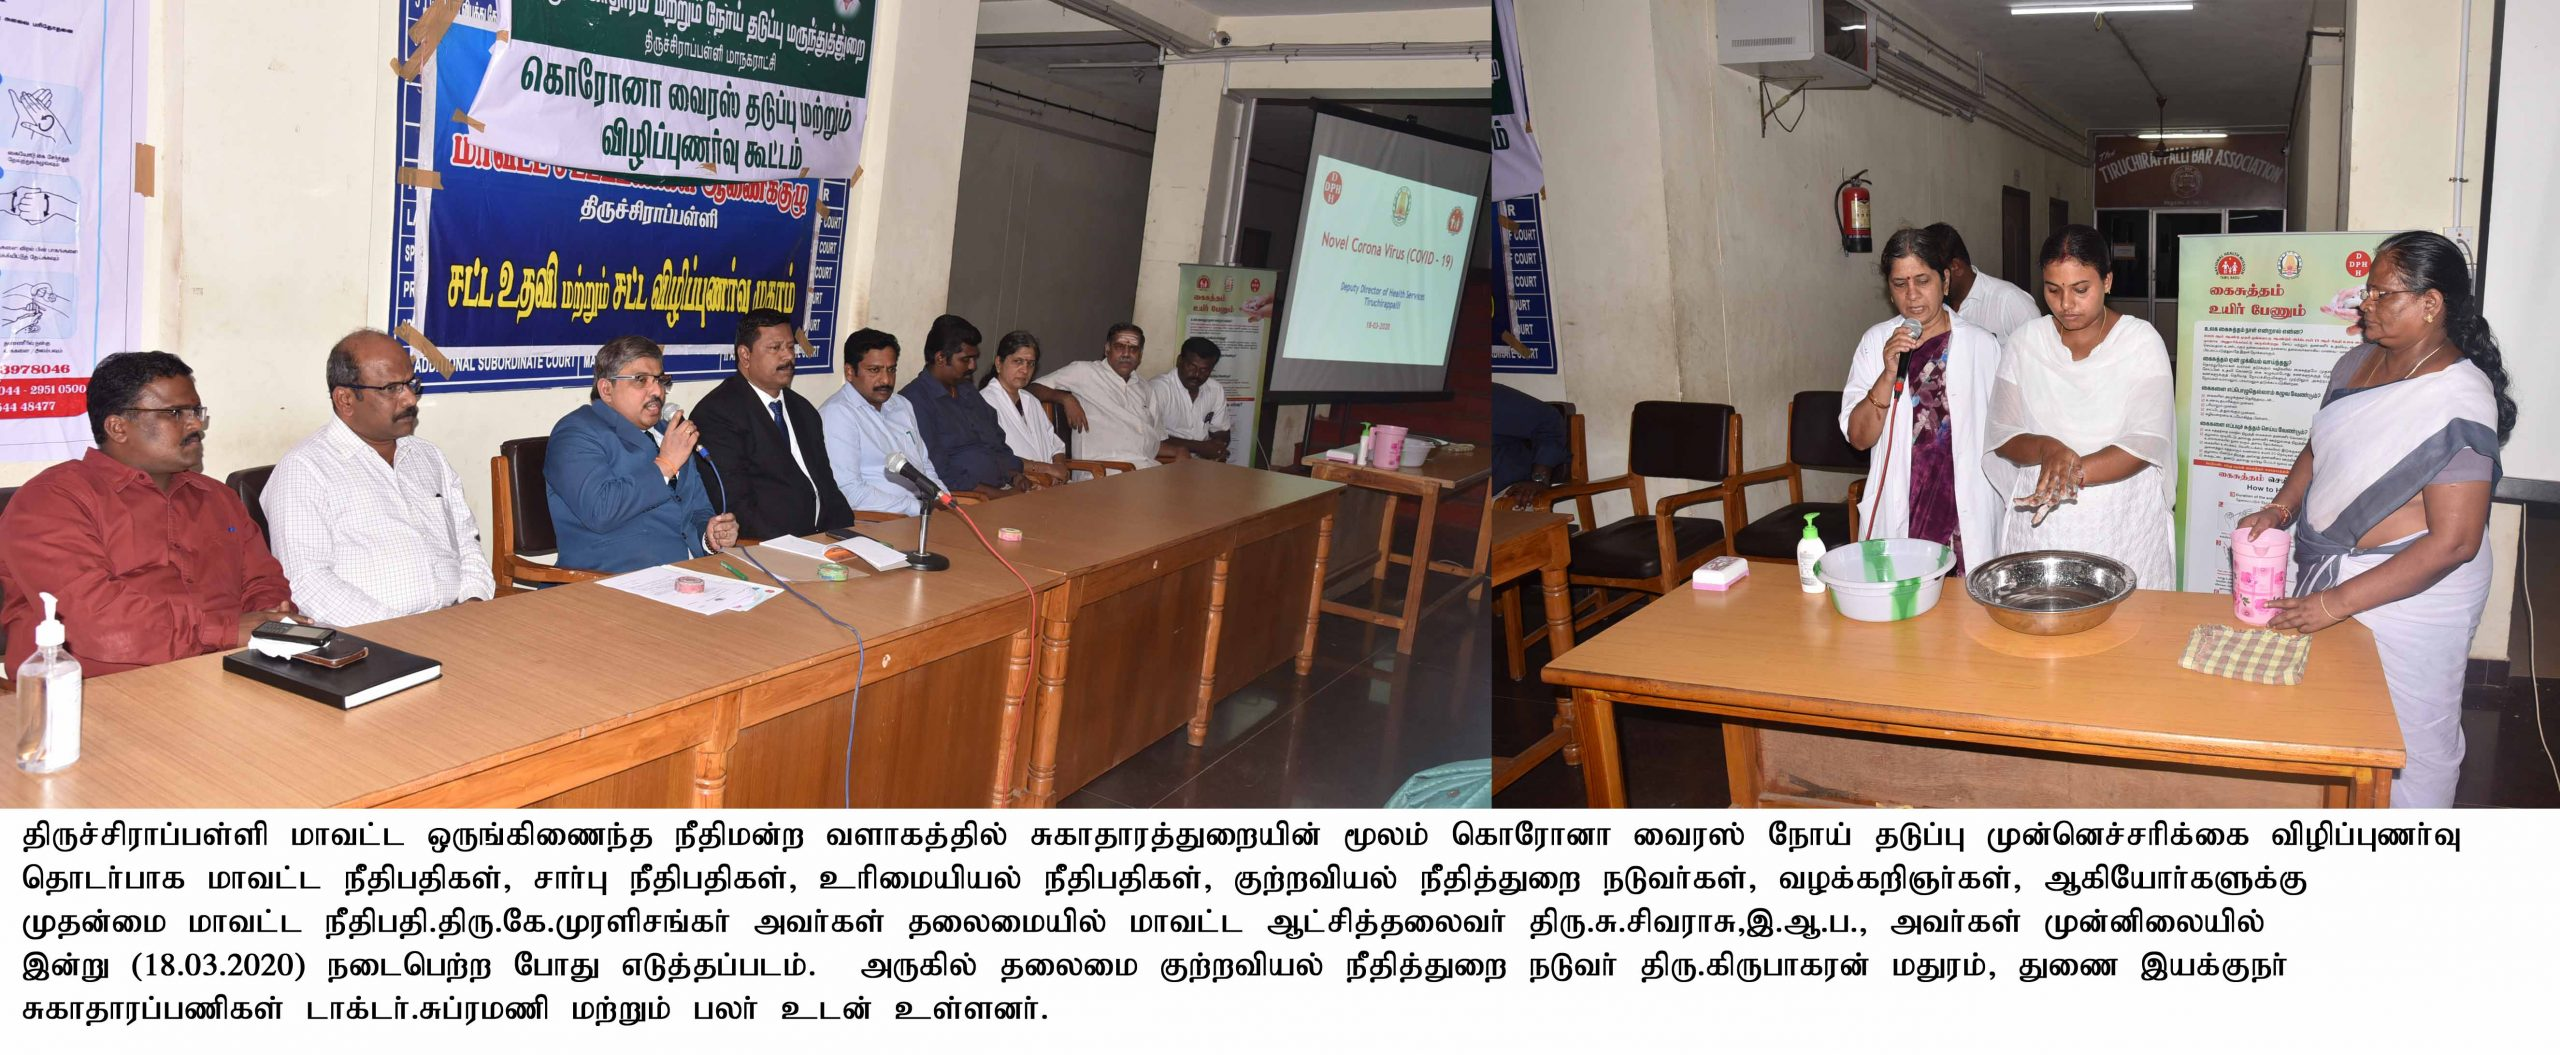 Corona Virus Prevention and Management - Awareness Programme at District Court Complex